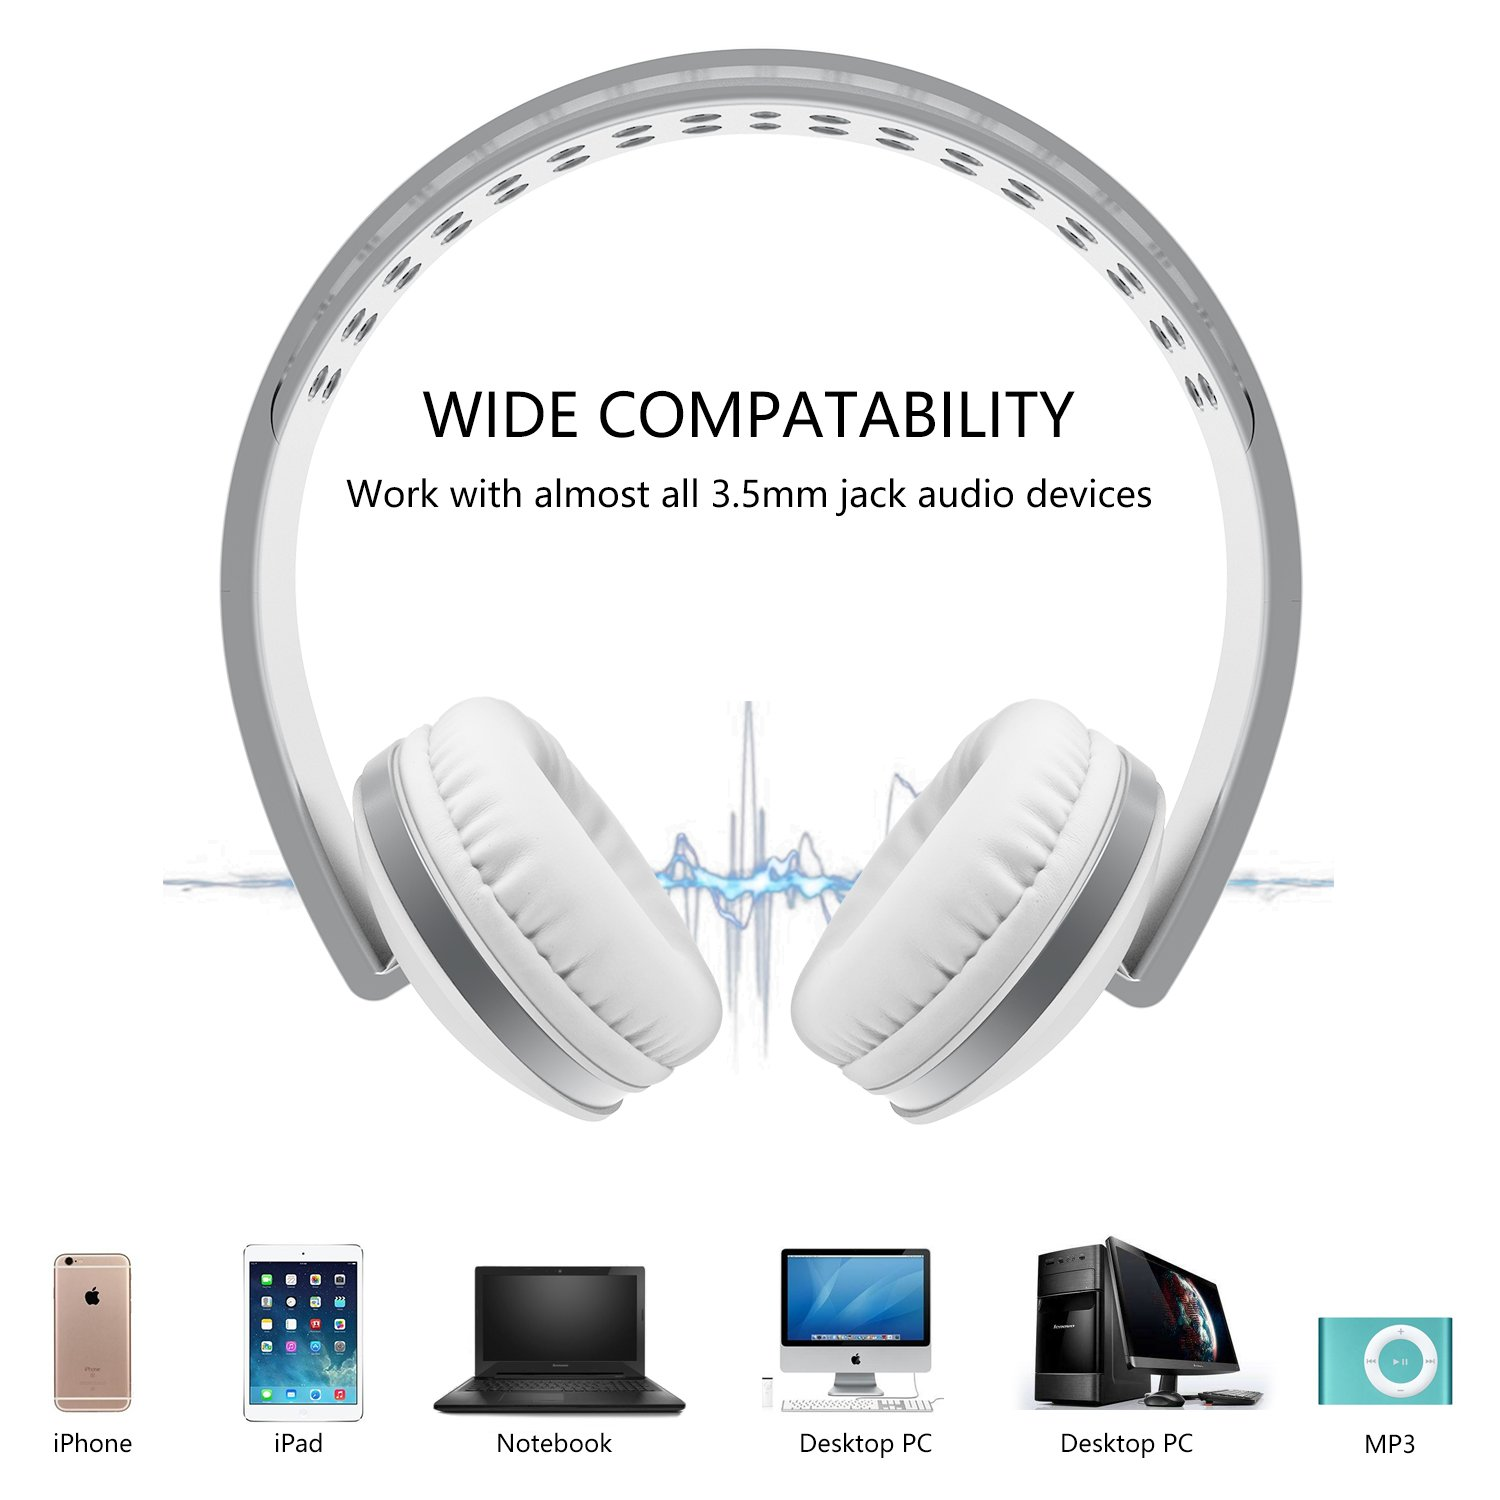 Foldable Headphones with Microphone, Vive Comb Stereo Lightweight Adjustable PC Headset Wired Headphones with Volume Control for Tablet, Smartphones, Video Game, Laptop-White by Vive Comb (Image #2)